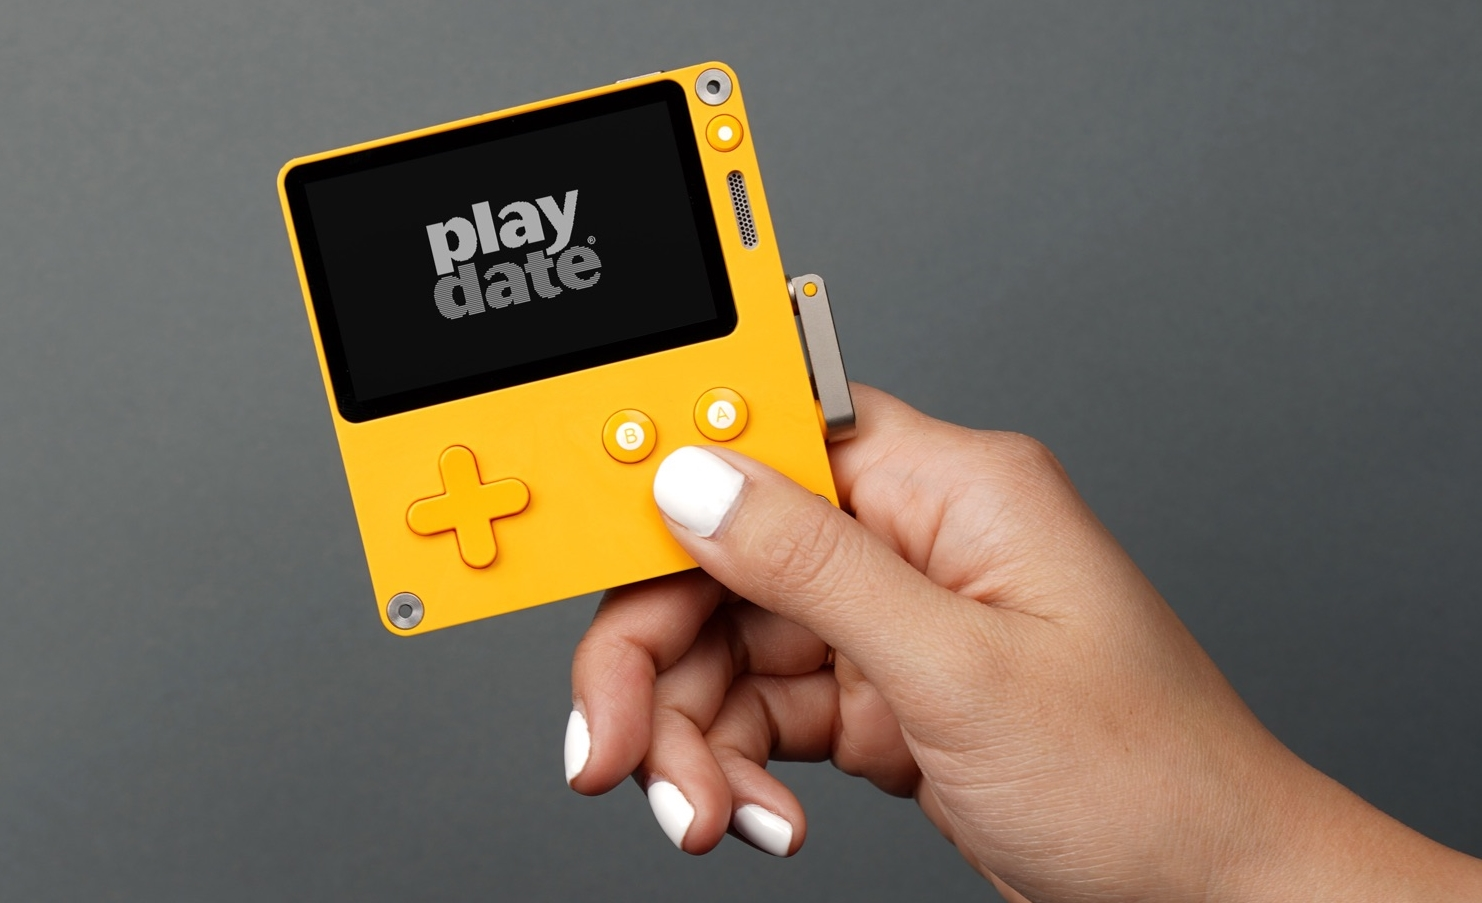 Playdate is a black & white handheld console with a crank controller